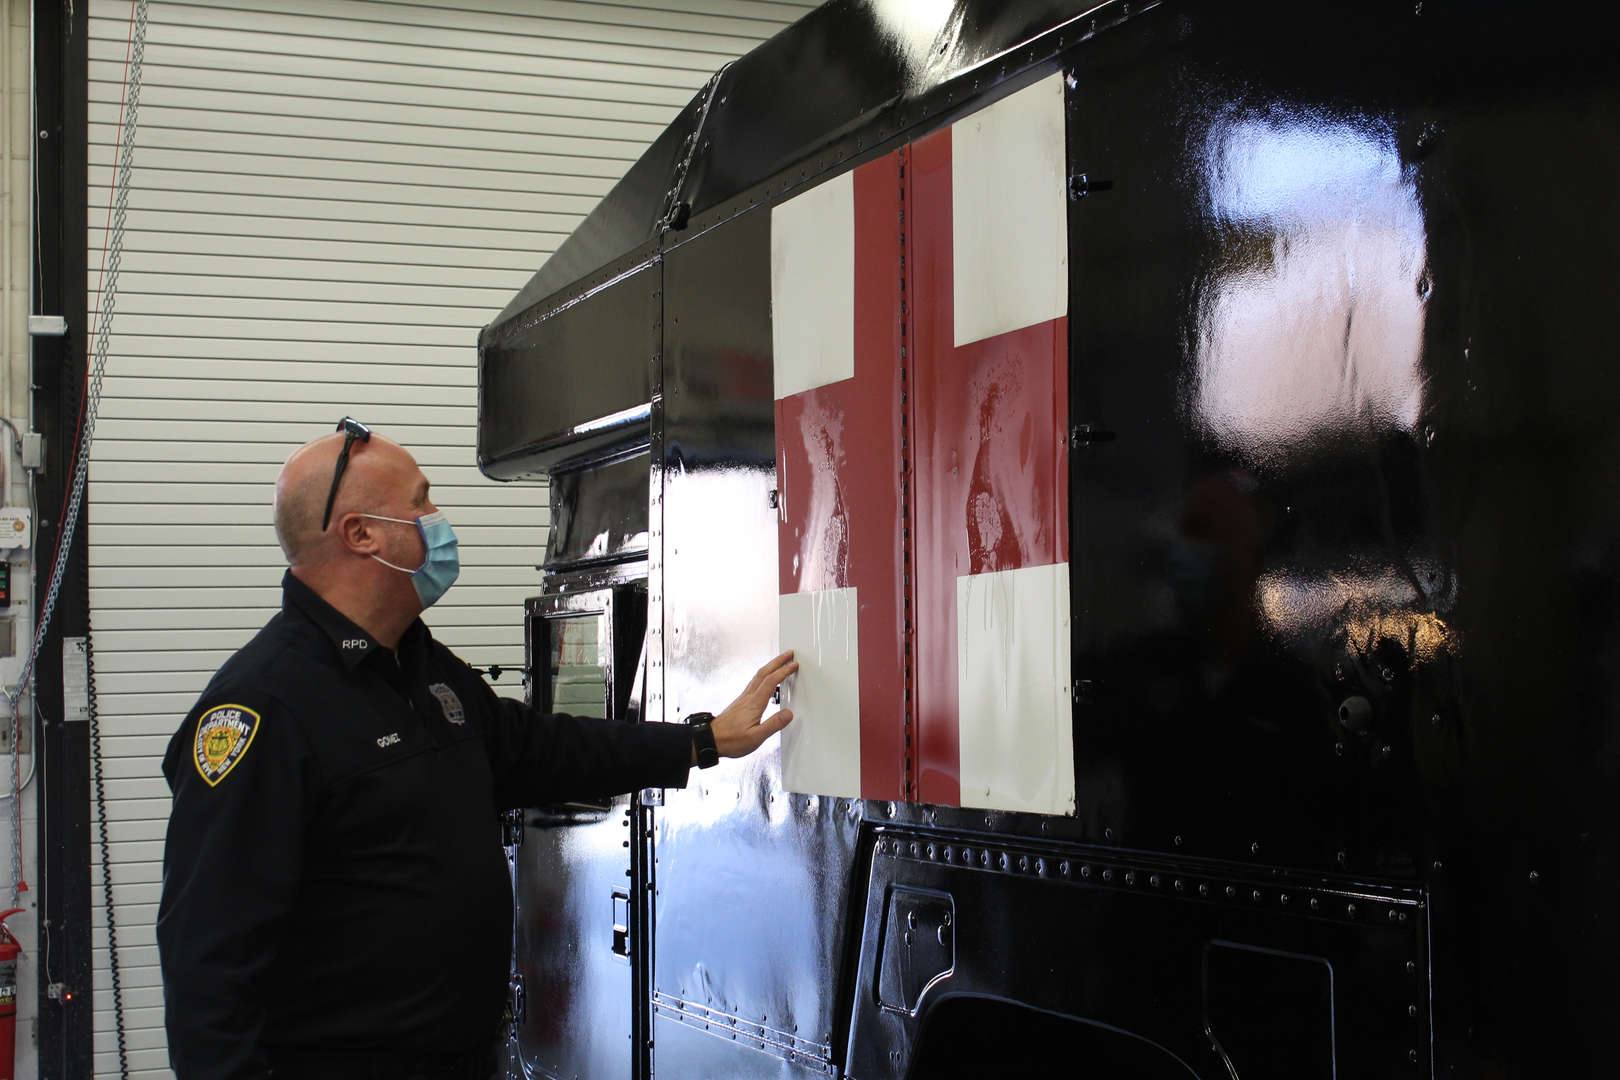 Police officer looks at side of newly painted vehicle